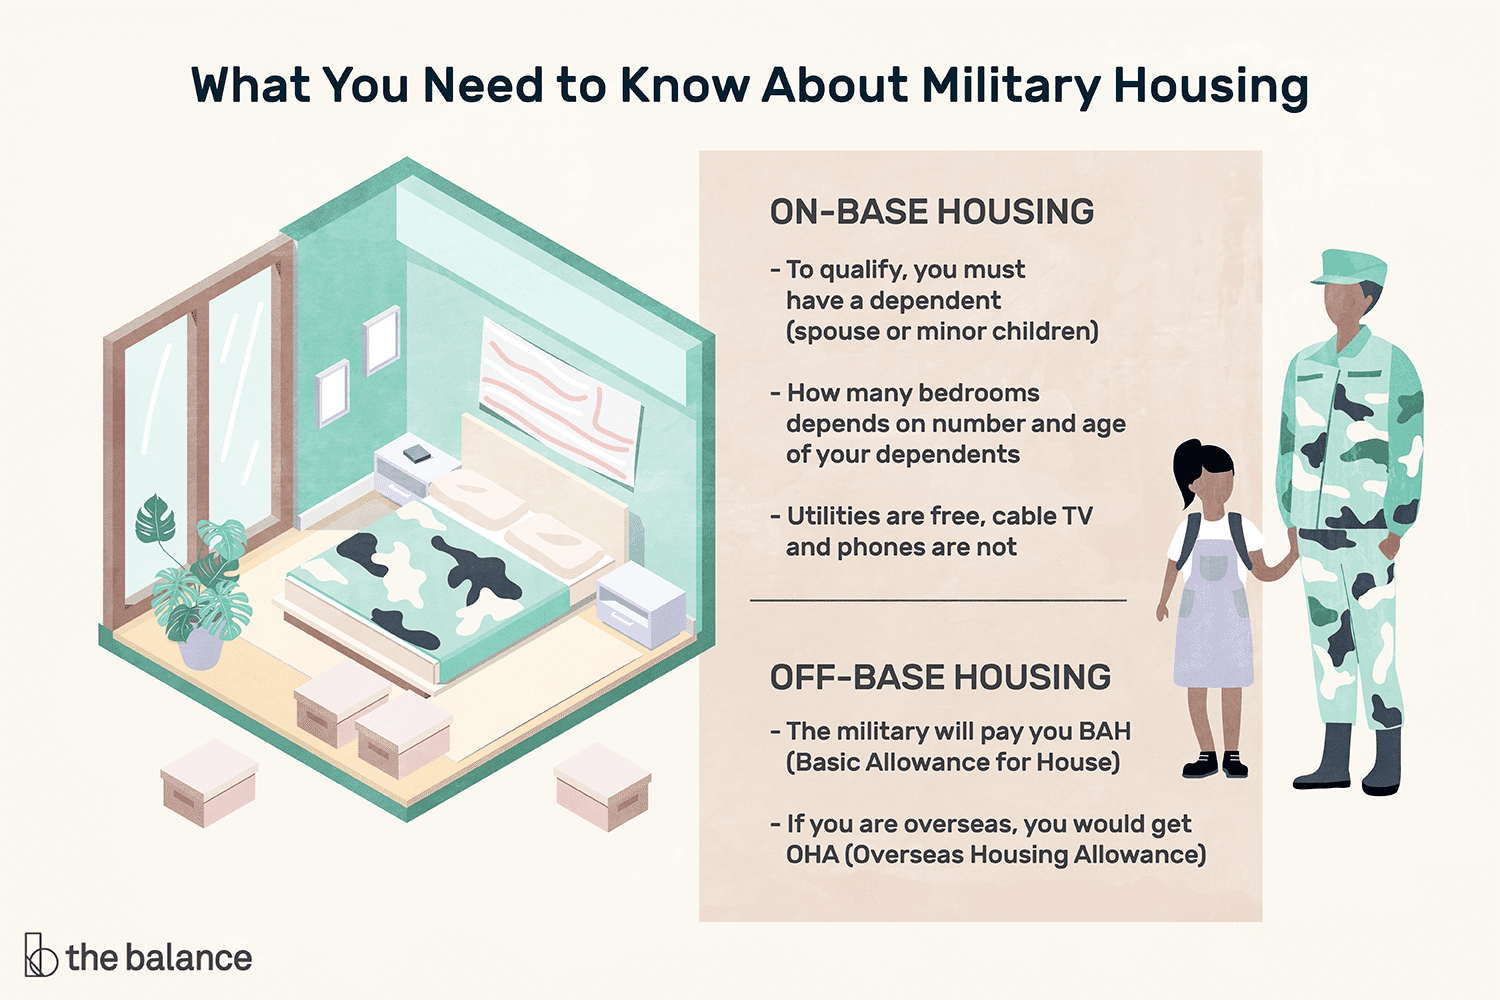 US Military Housing, Barracks, and Housing Allowance